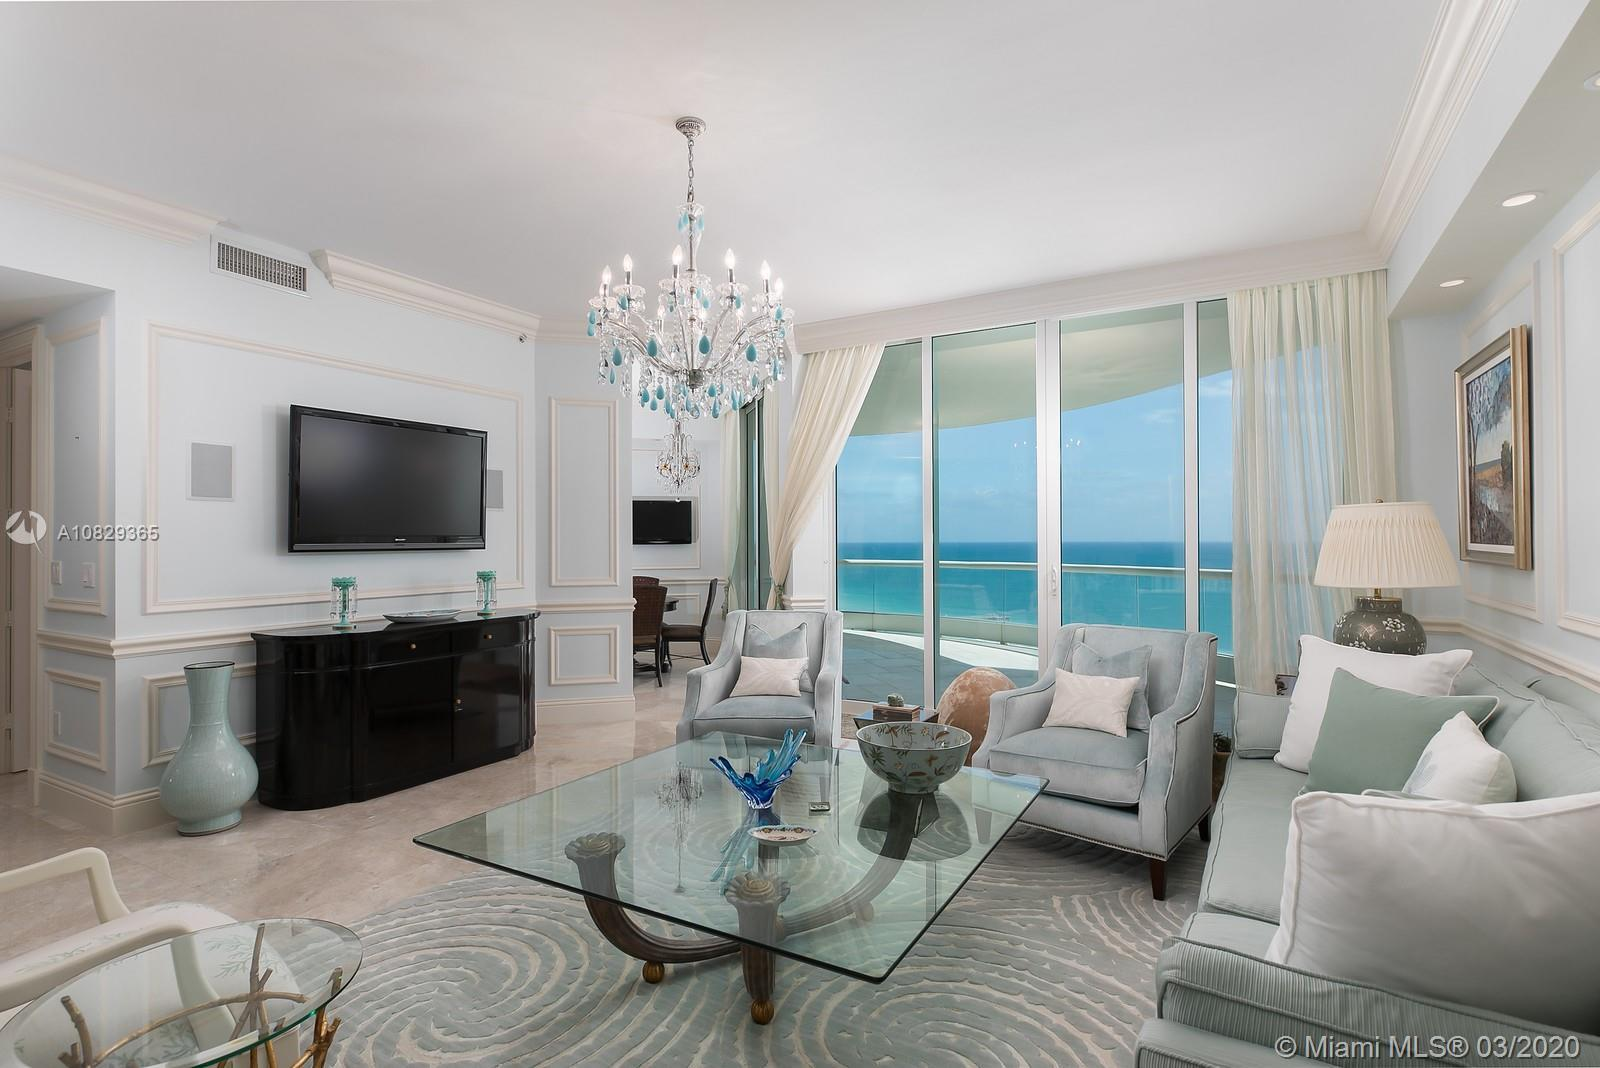 Best deal at Turnberry Ocean Colony!!!  Unit 2001 offers 3 bedrooms with 2,772 SQ ft. Located on the